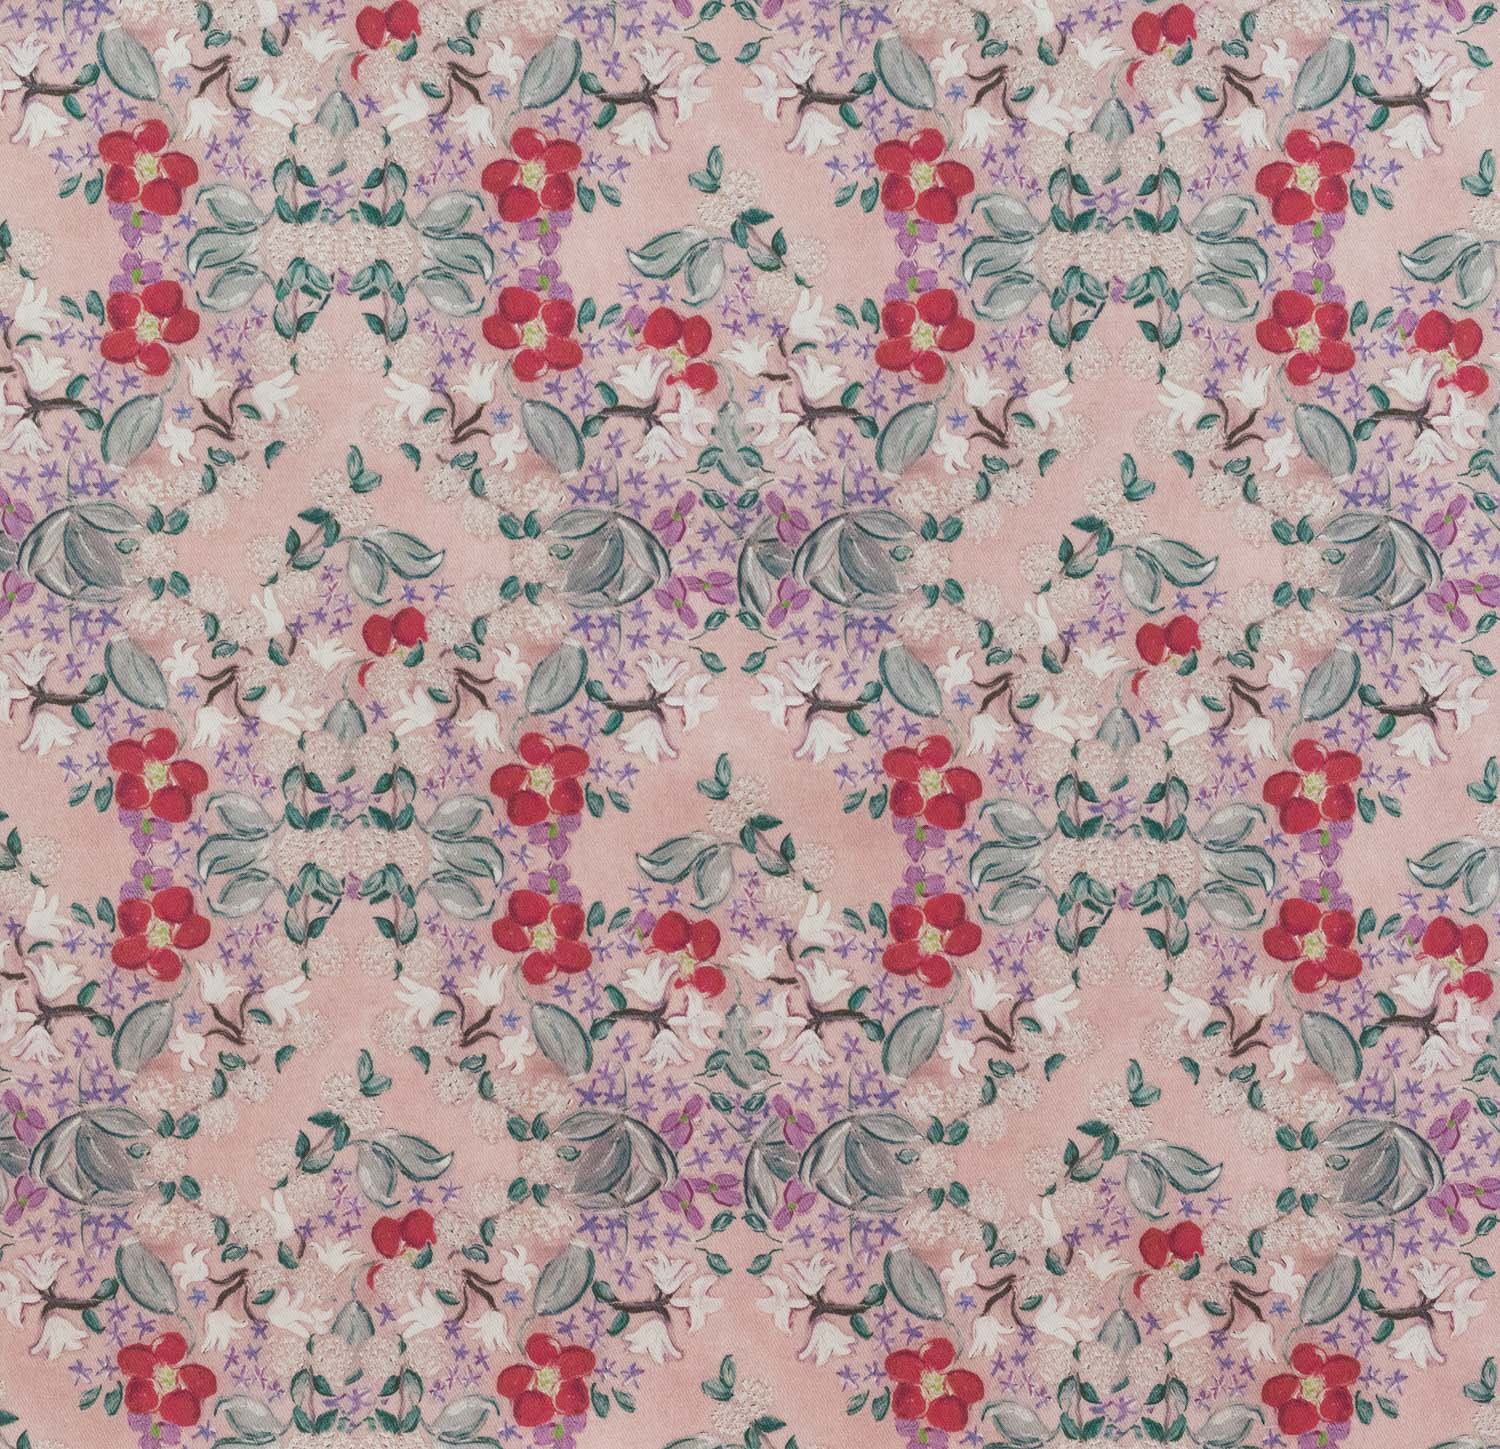 pink floral pattern fabric